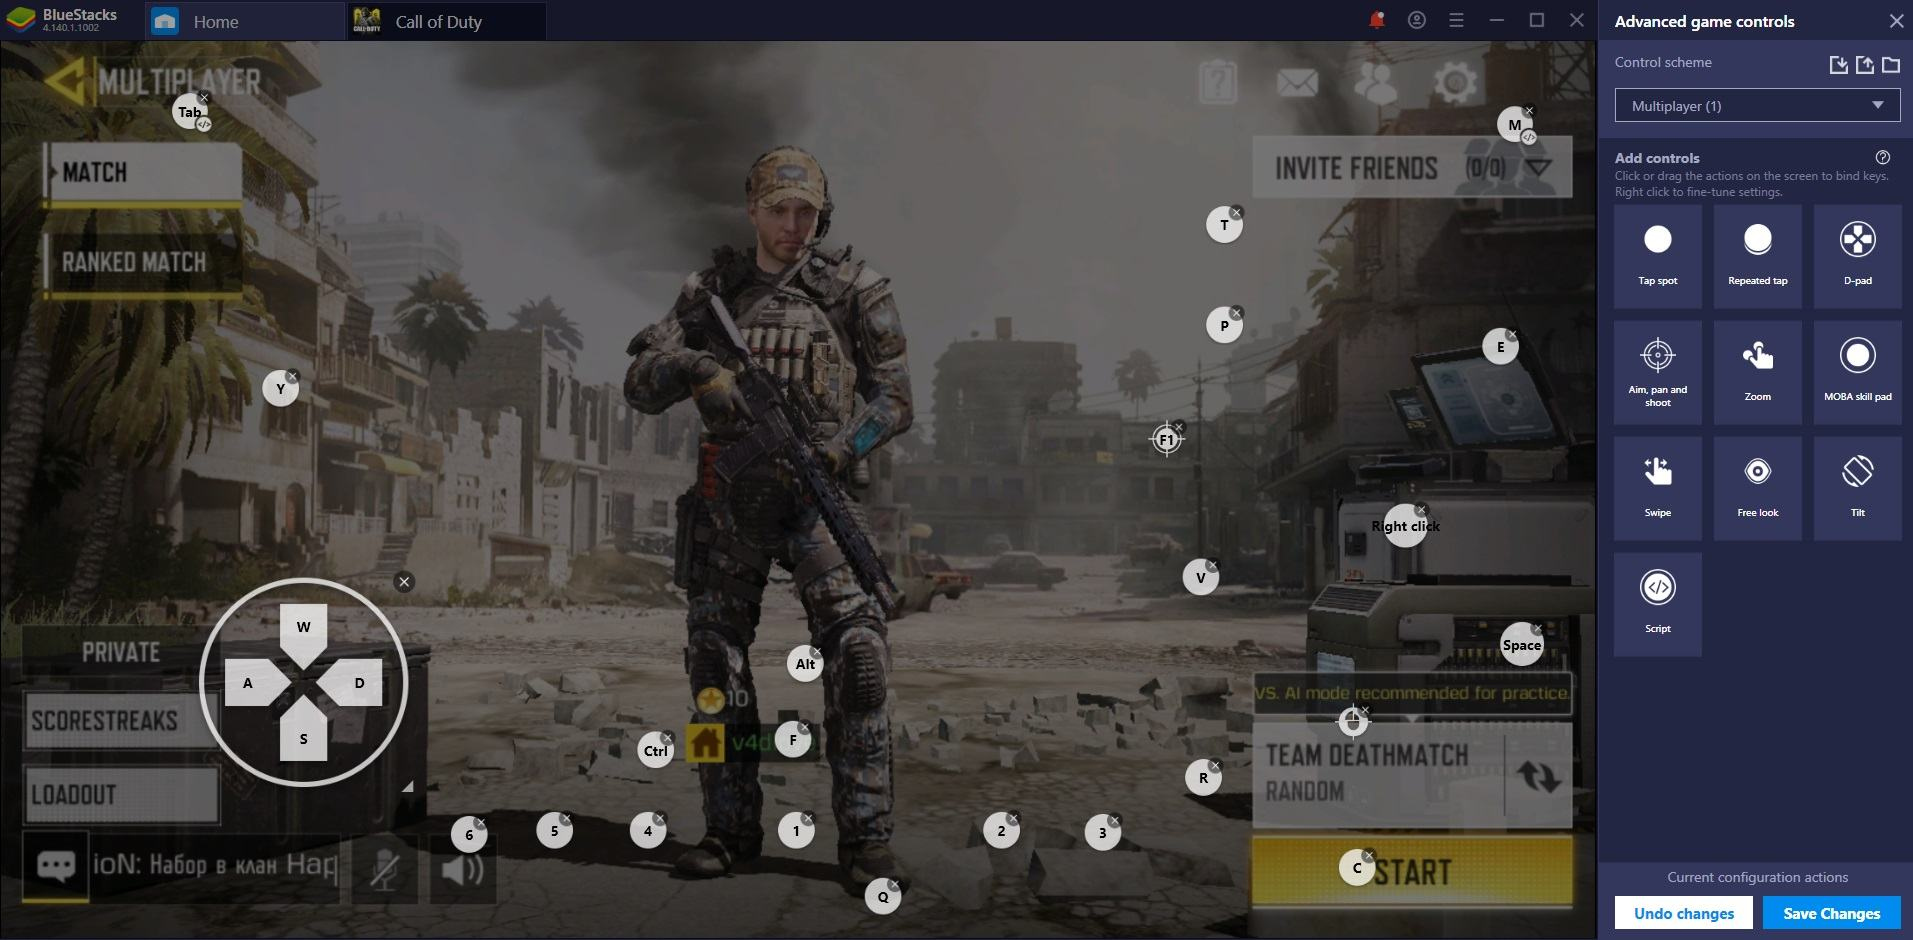 CoD Mobile: Pro Tips and Tricks